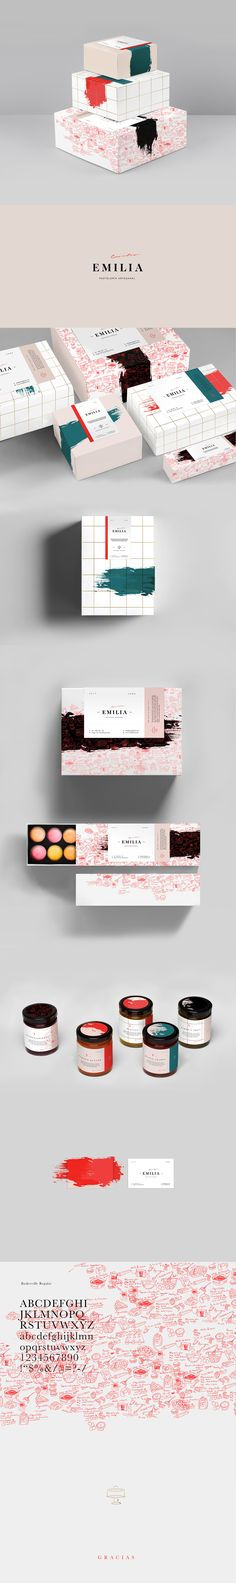 Emilia Pasteleria Artesanal Packaging by Karla Heredia Martinez | Fivestar Branding Agency – Design and Branding Agency & Curated Inspiration Gallery